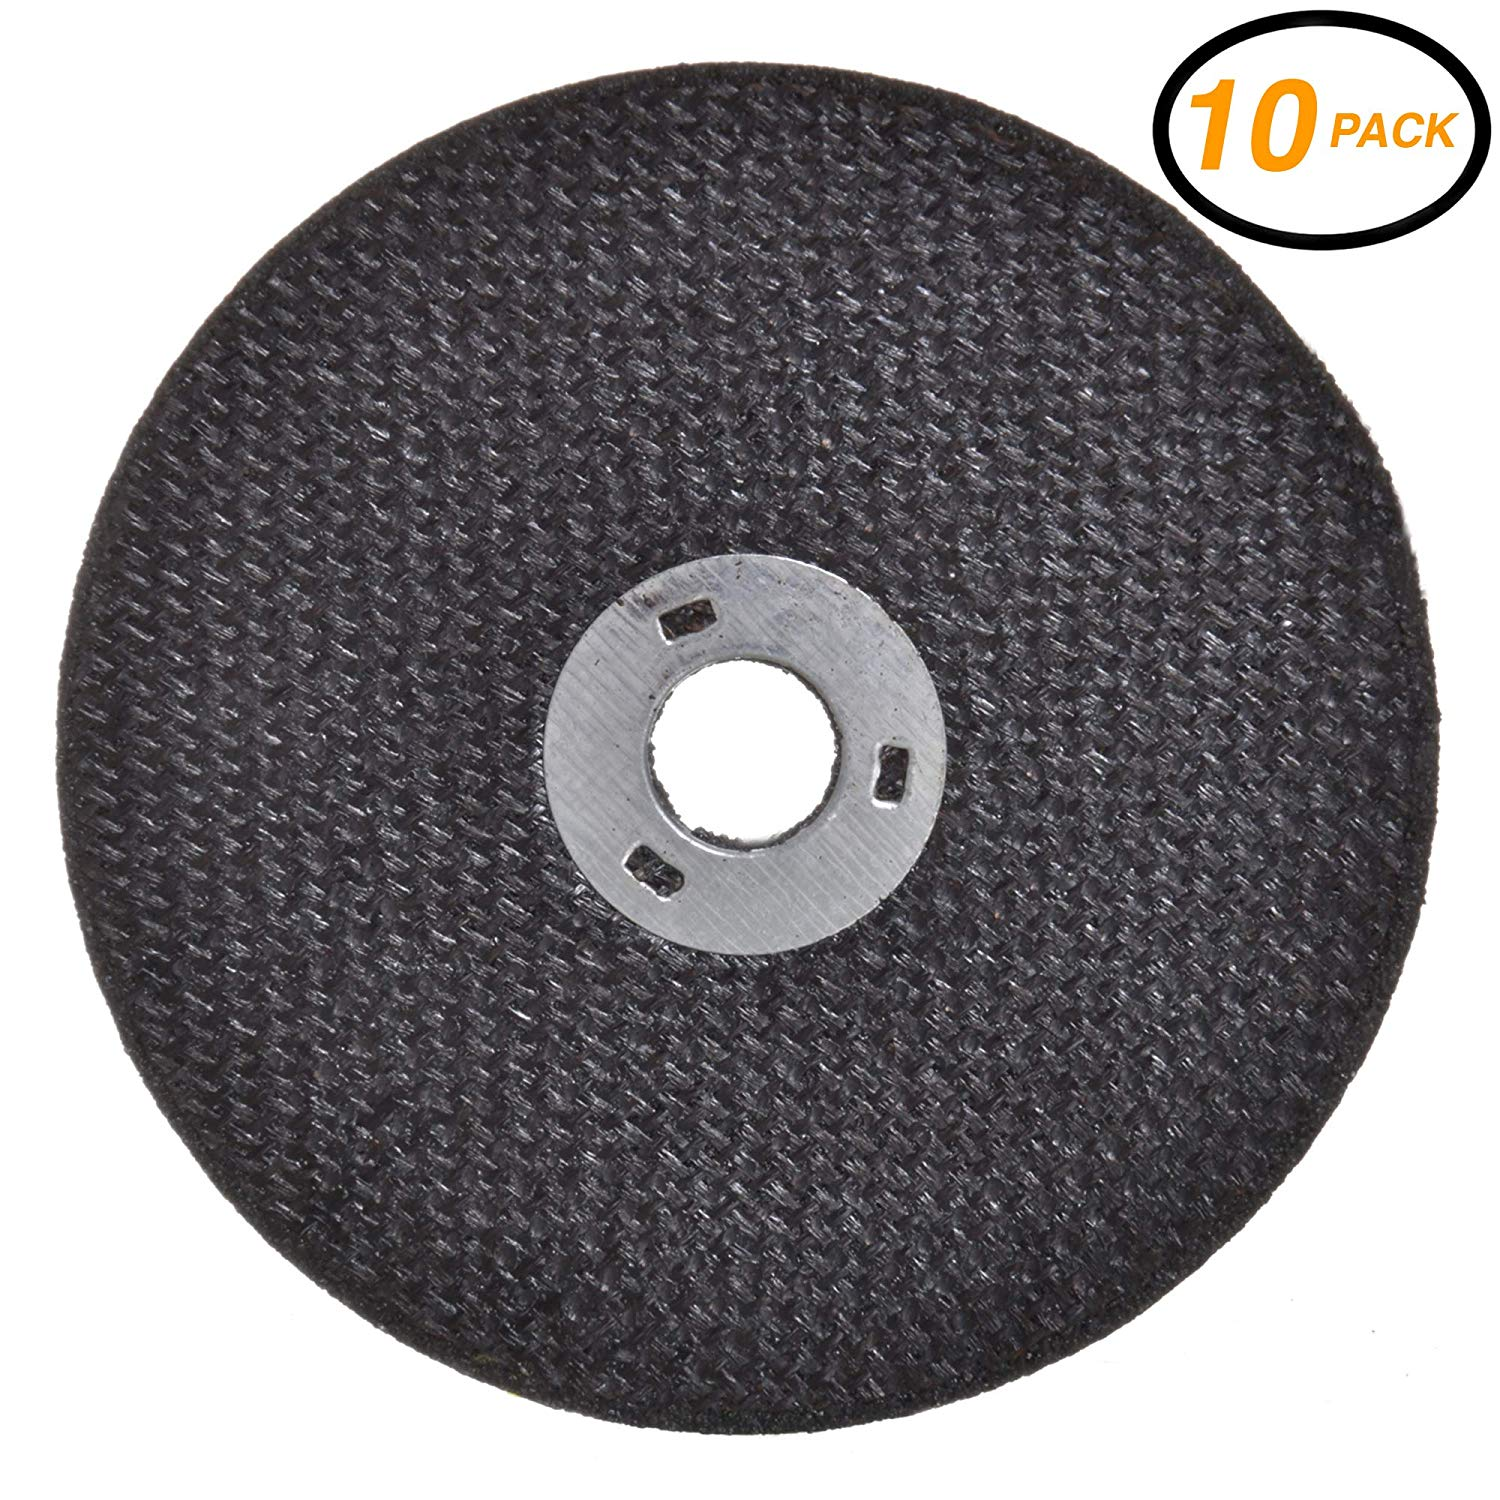 Drixet Die Grinder Cut Off Wheel - Round Hole Cut Off Wheel Metal Cutting Disc for Grinder Zinc Plated Flap Disc Cutting Wheels for Grinders, Flat Cut Off Wheels